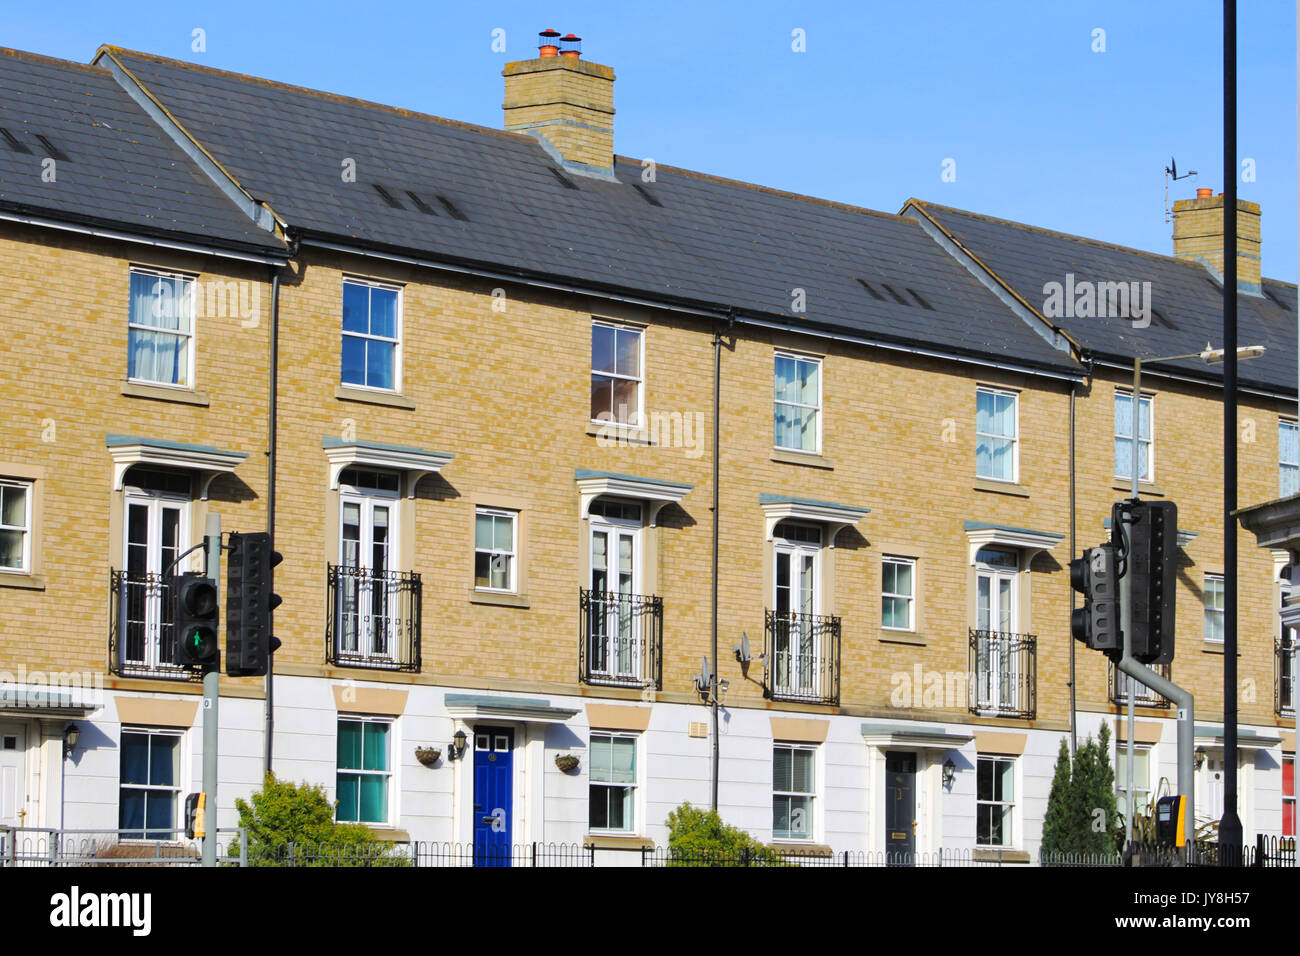 Ornate brick chimney stock photos ornate brick chimney for Terrace house series